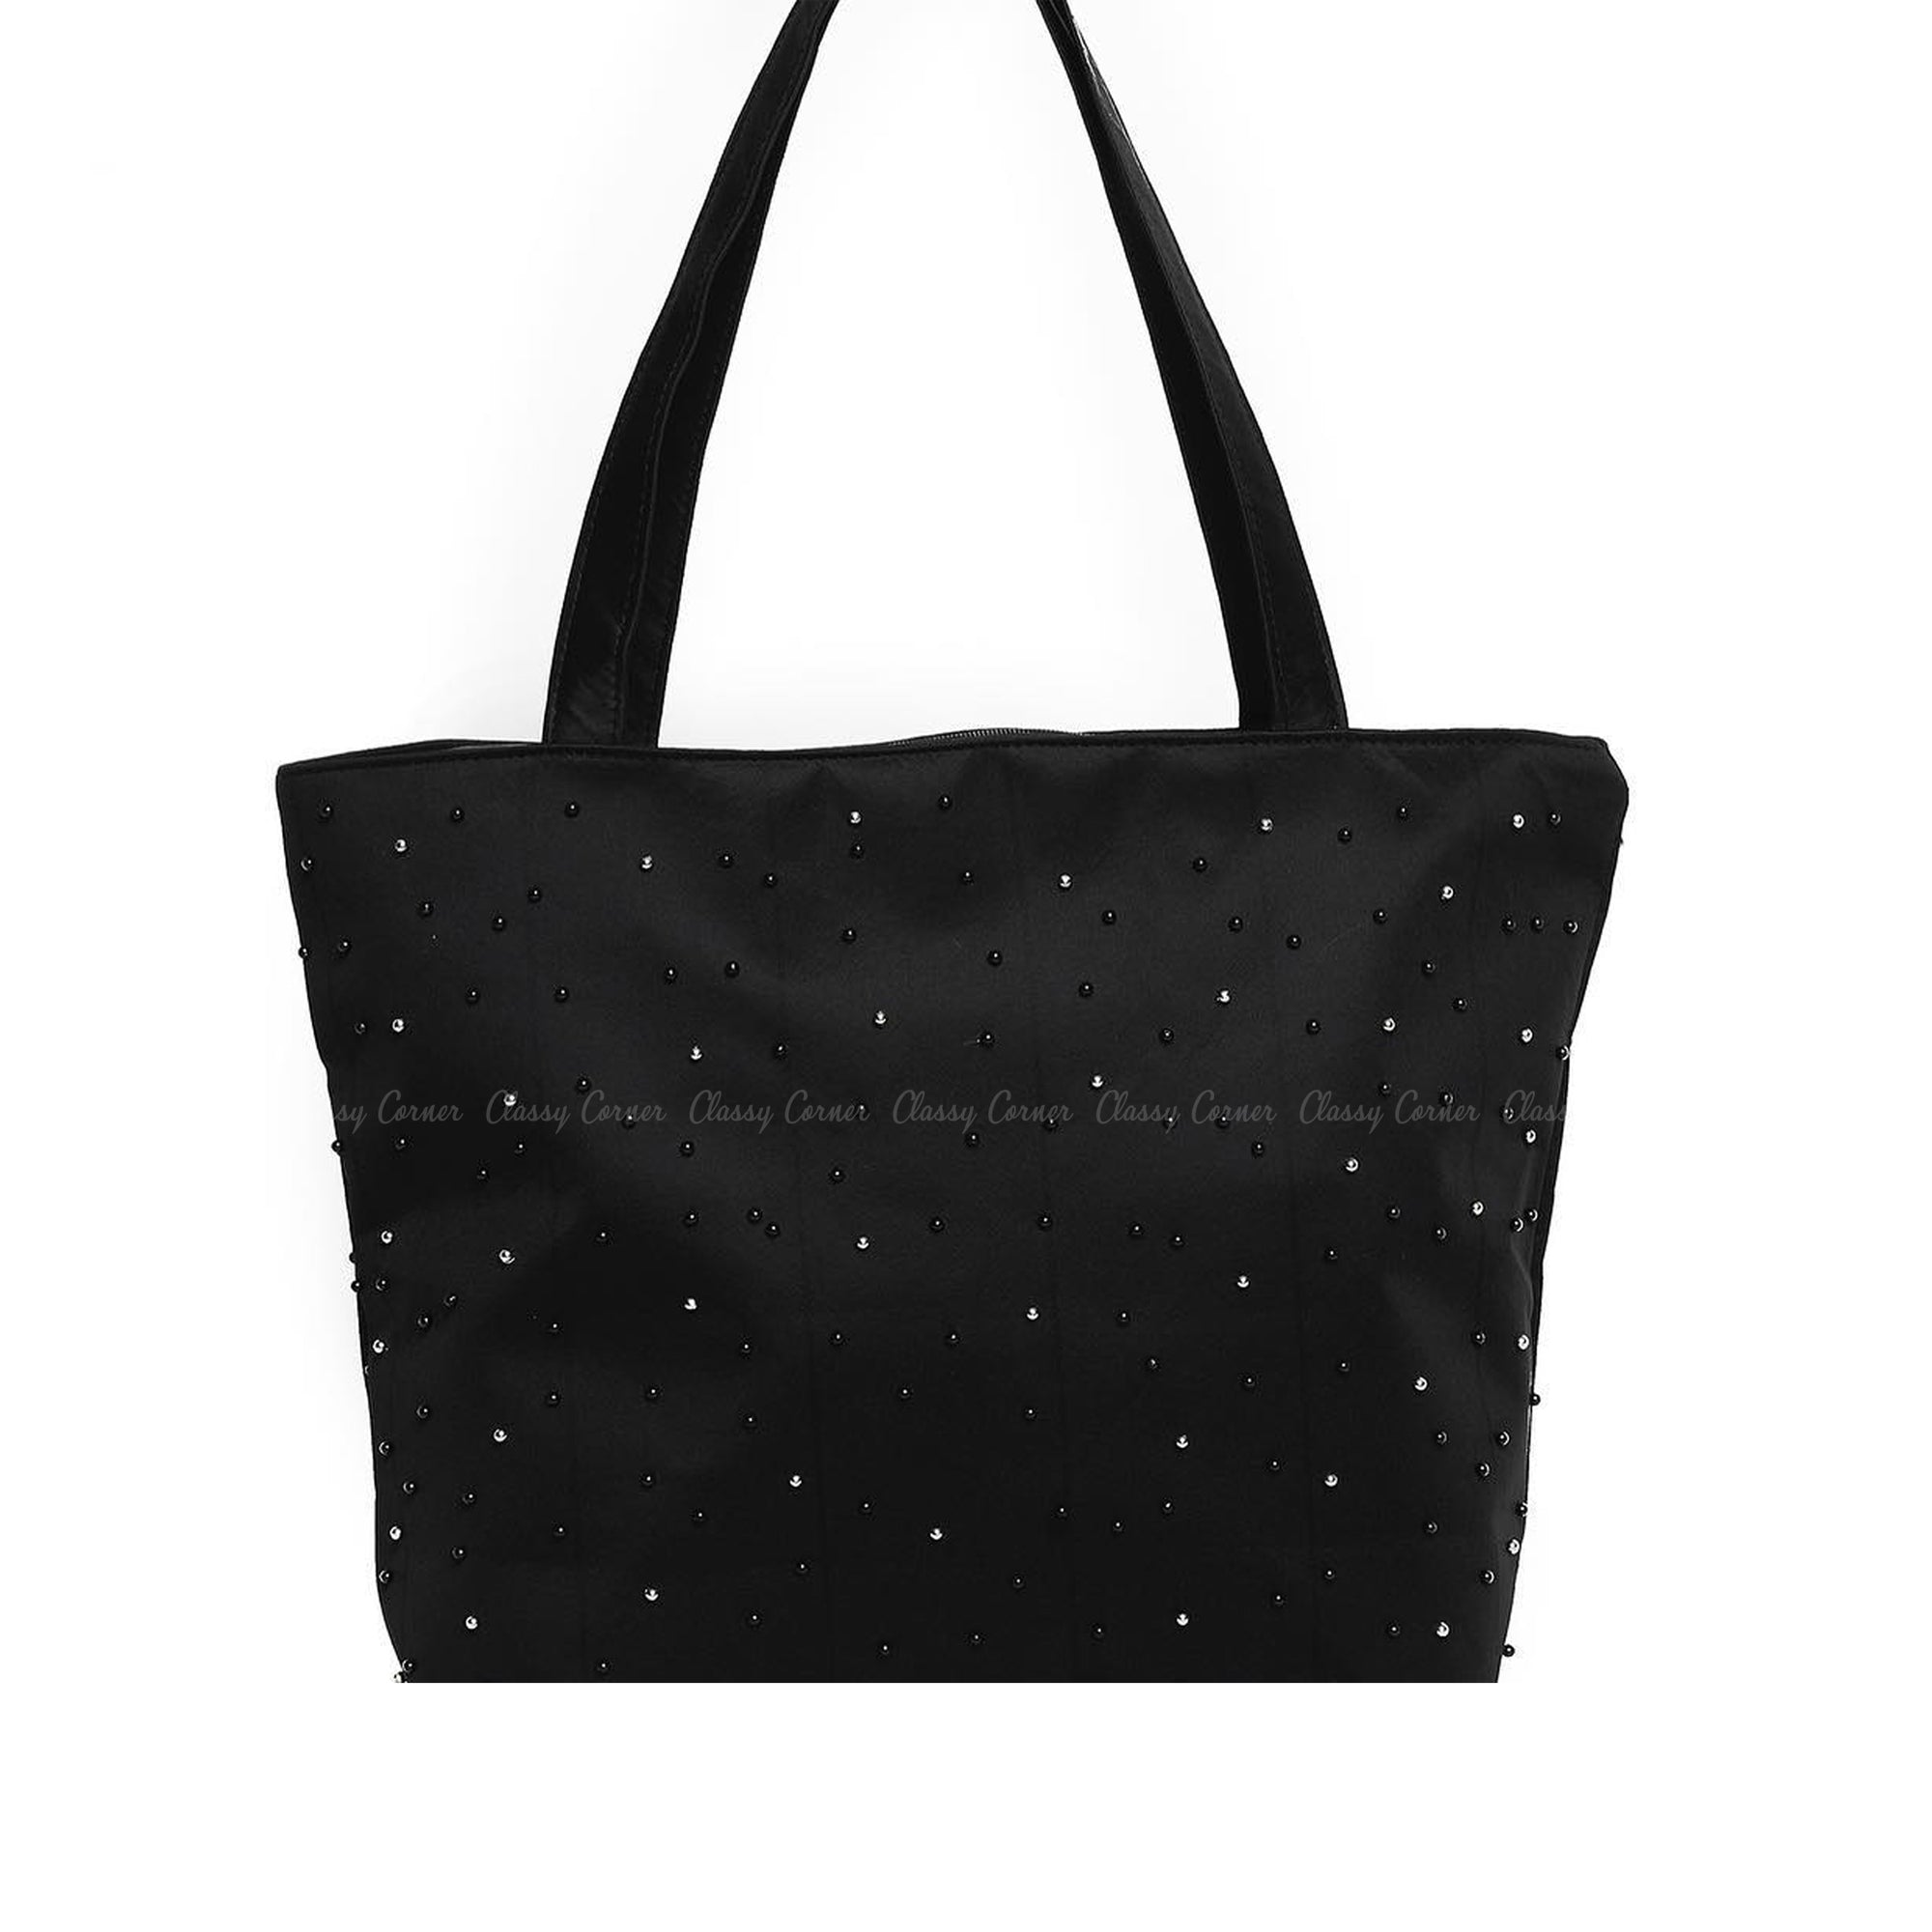 Black Silver Beads Design with Zipper Black Beach Tote Bag